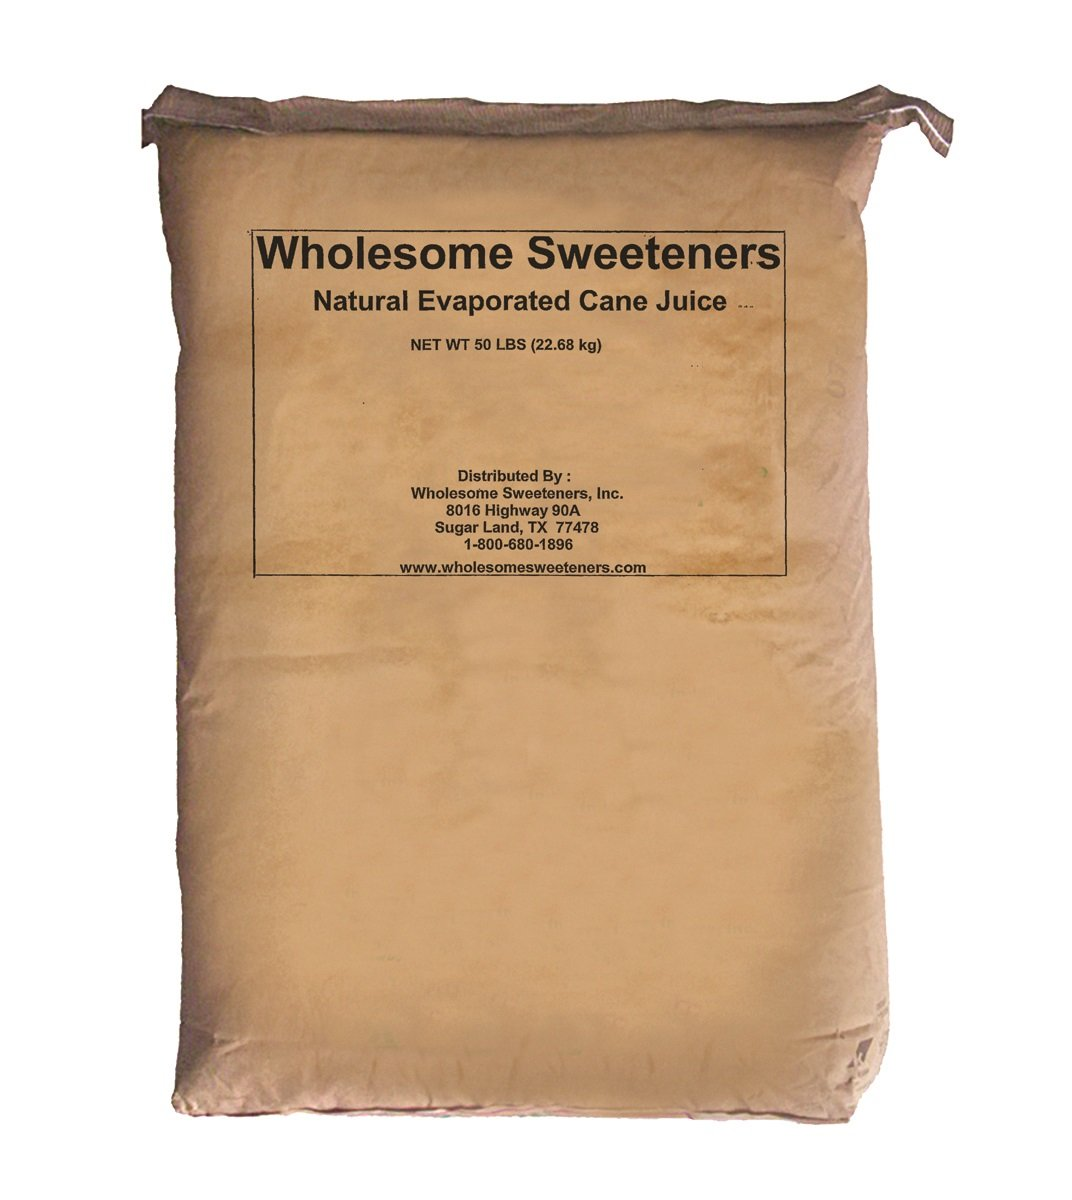 Wholesome Sweeteners Natural Cane Sugar (Evaporated Cane Juice), 50 lb, Single Unit